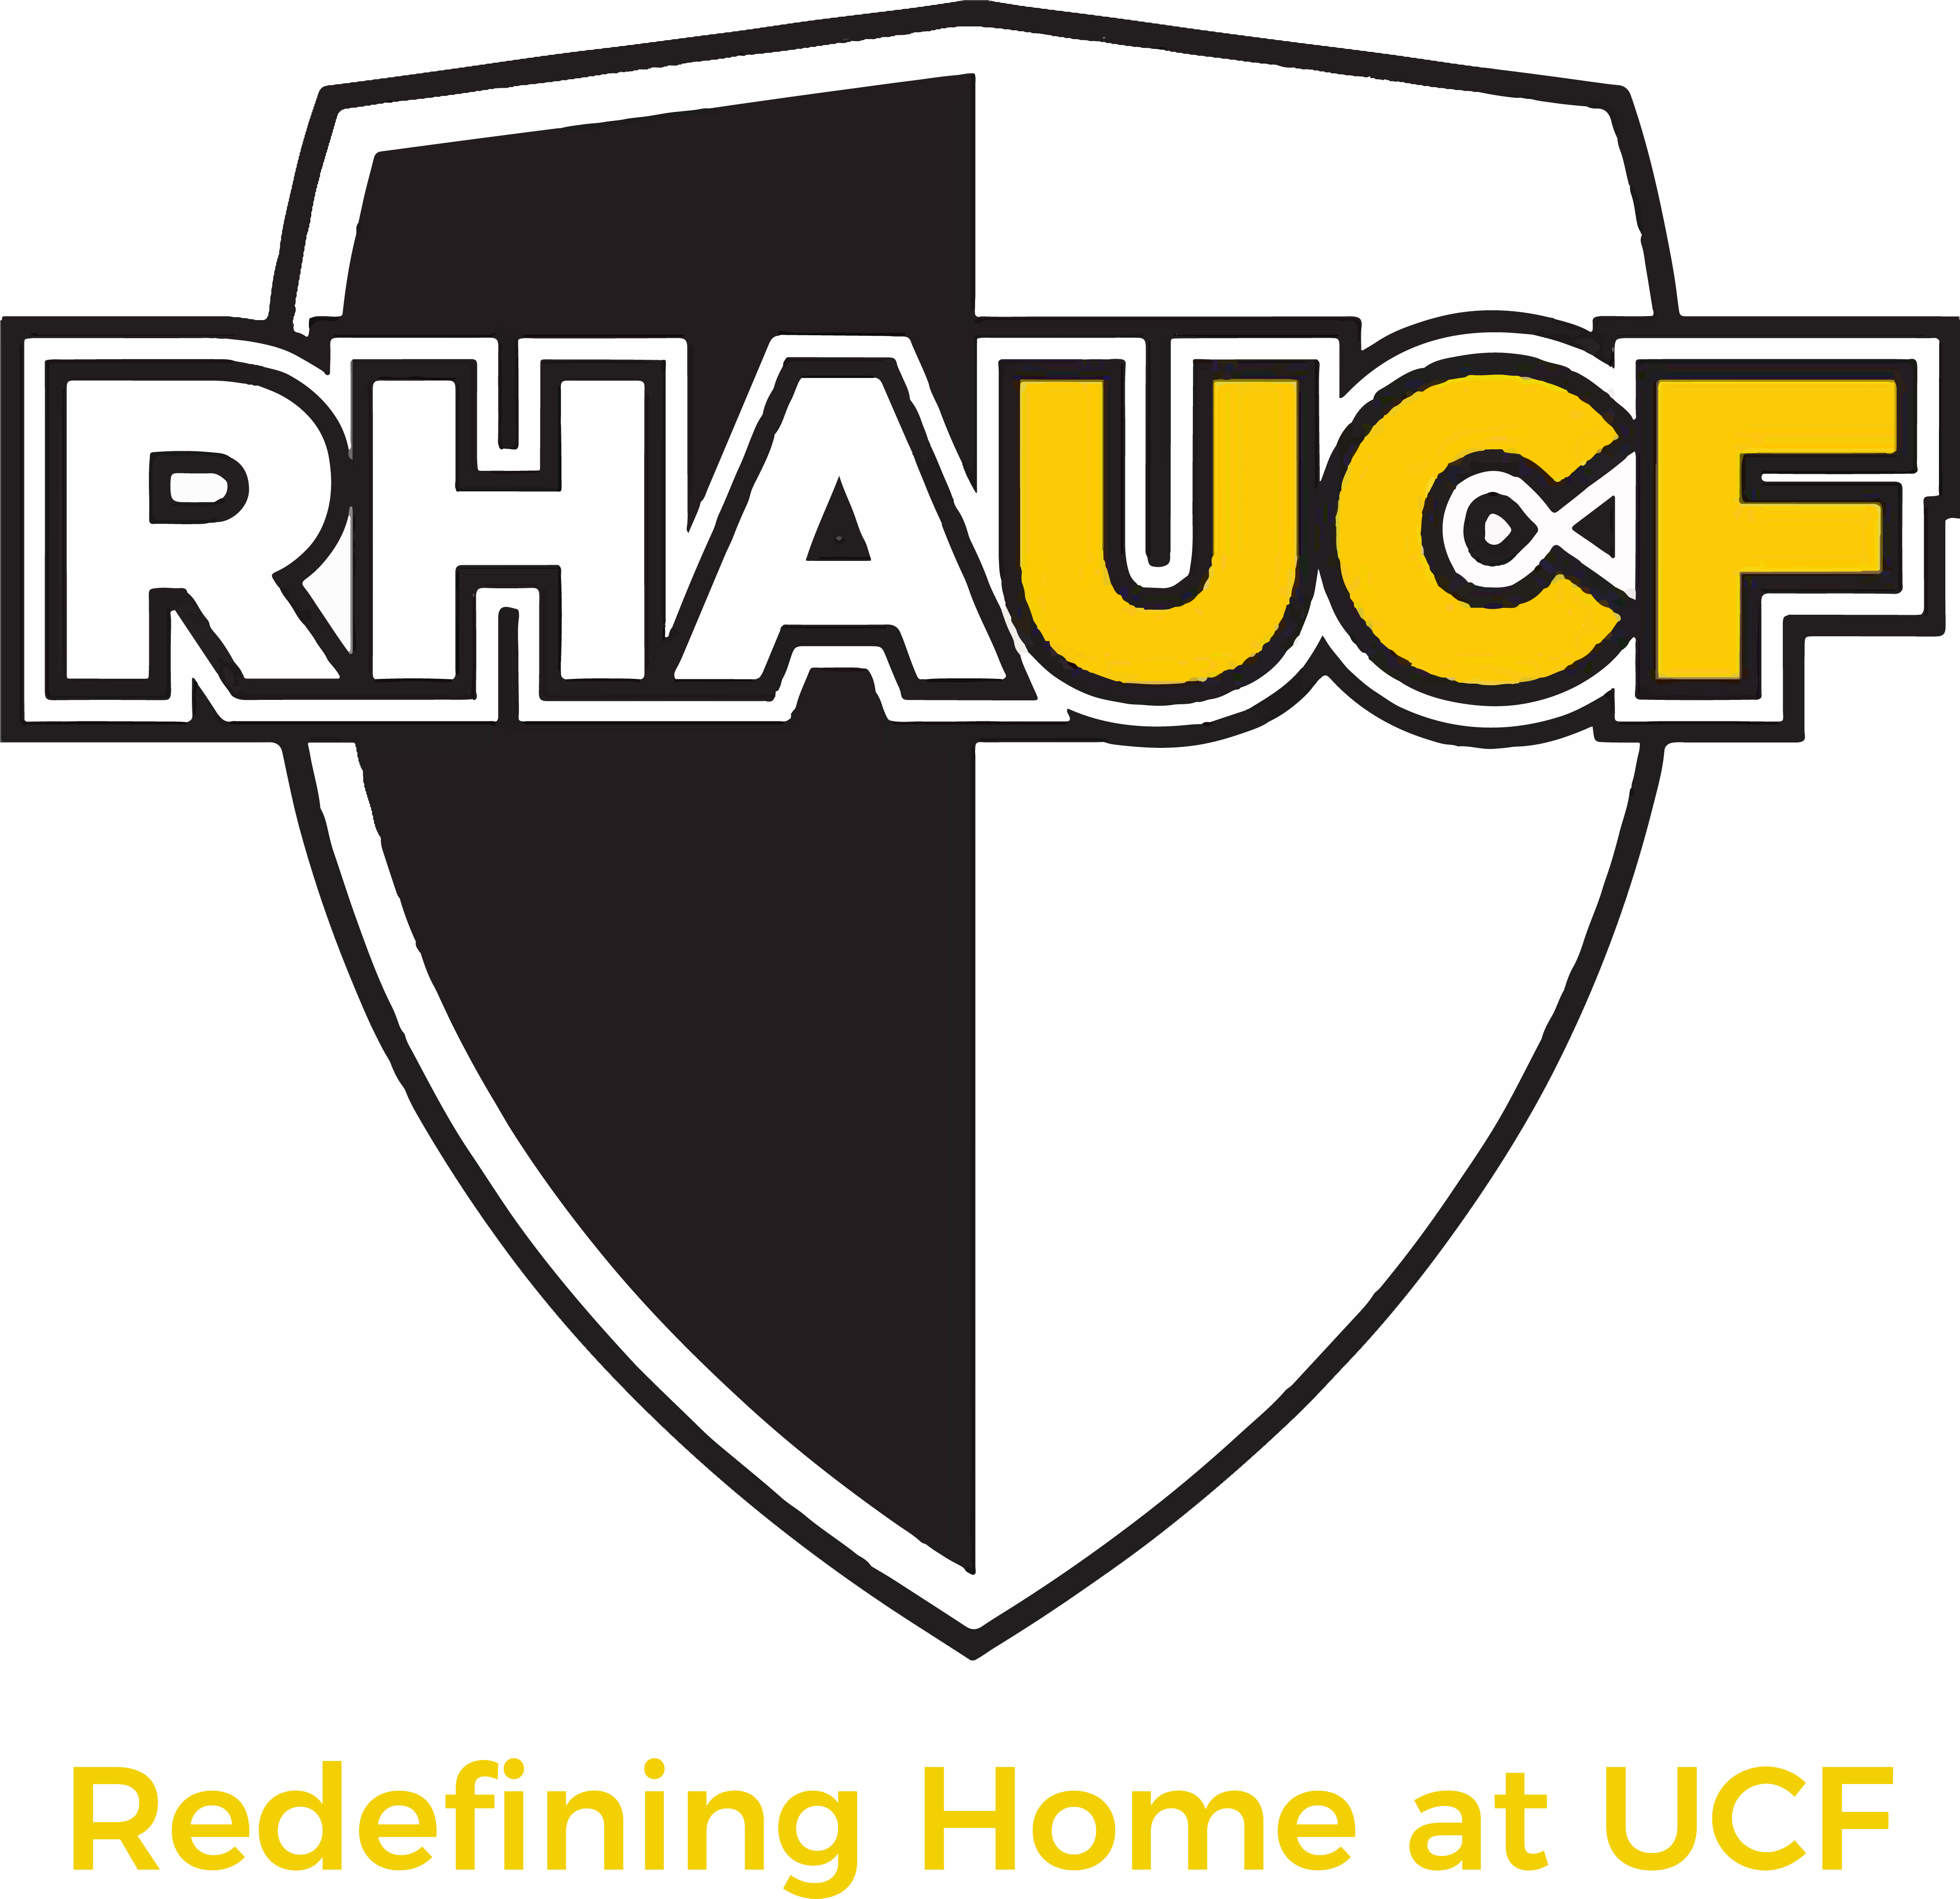 Residence Hall Association at UCF